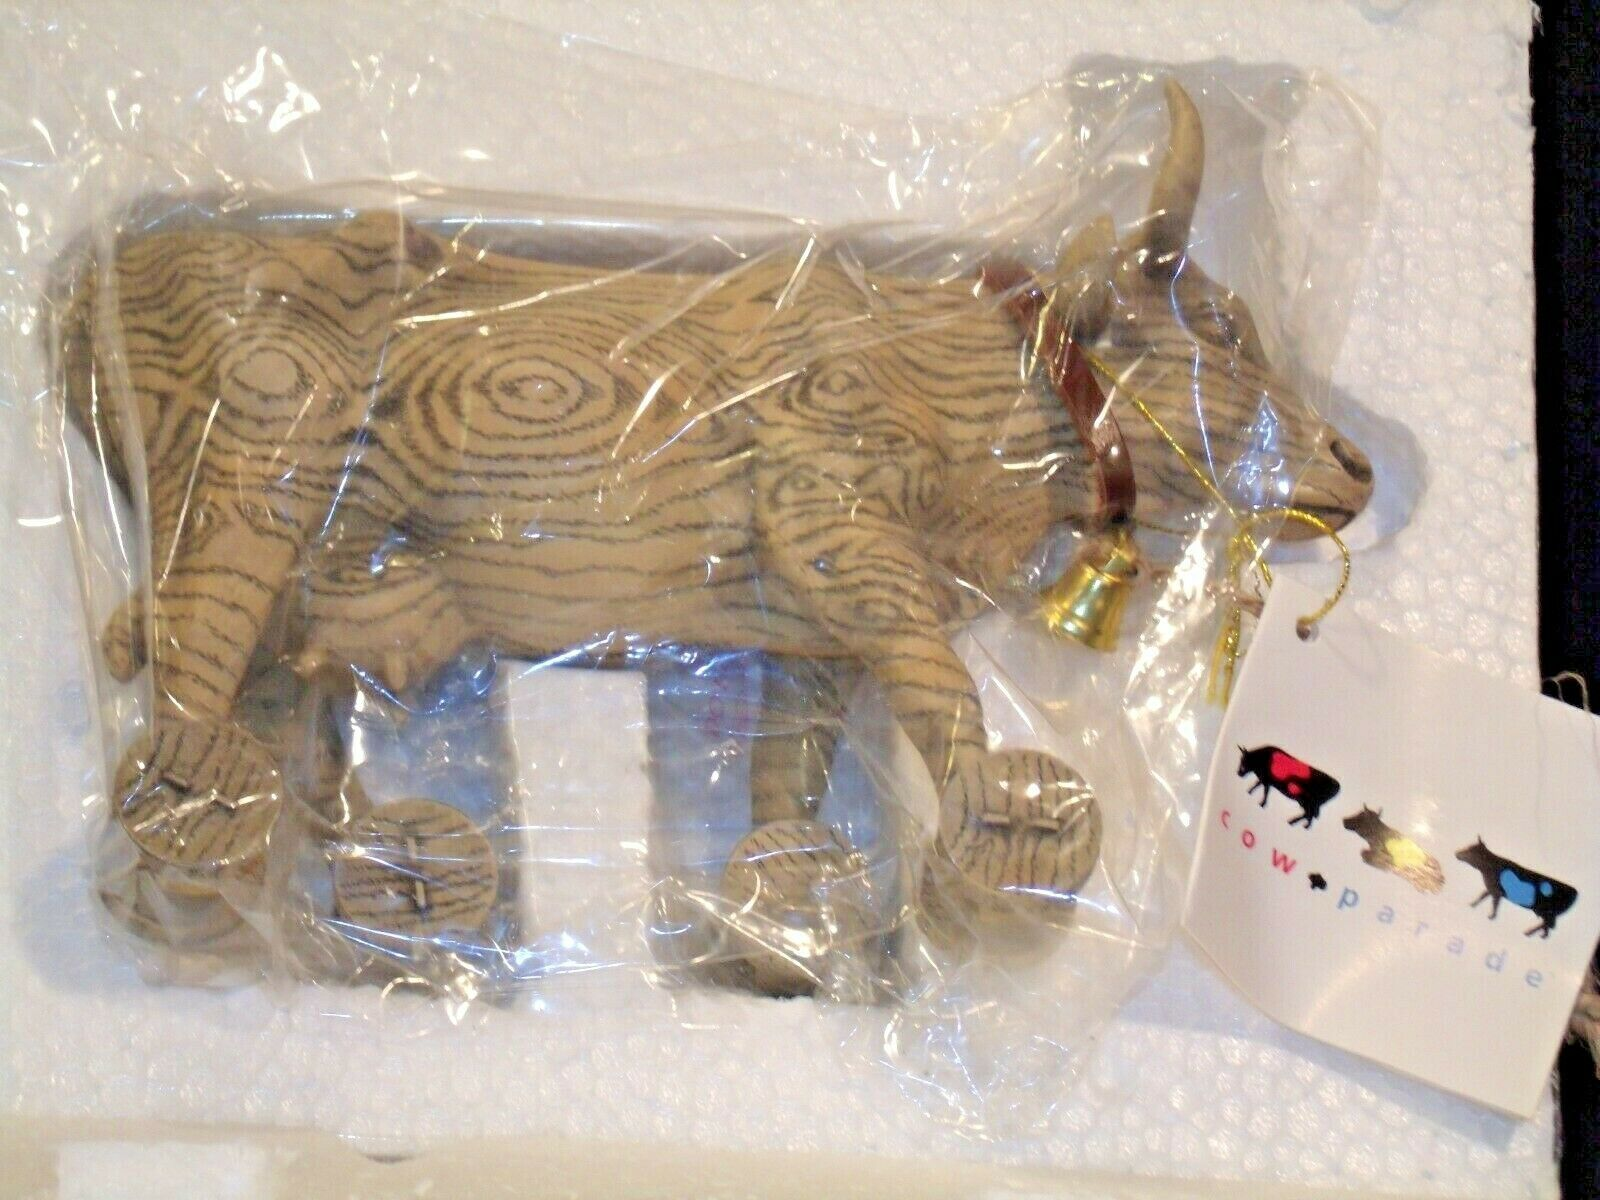 CowParade Pull Toy Item # 9130 Westland Giftware AA-191941  Vintage Collectible